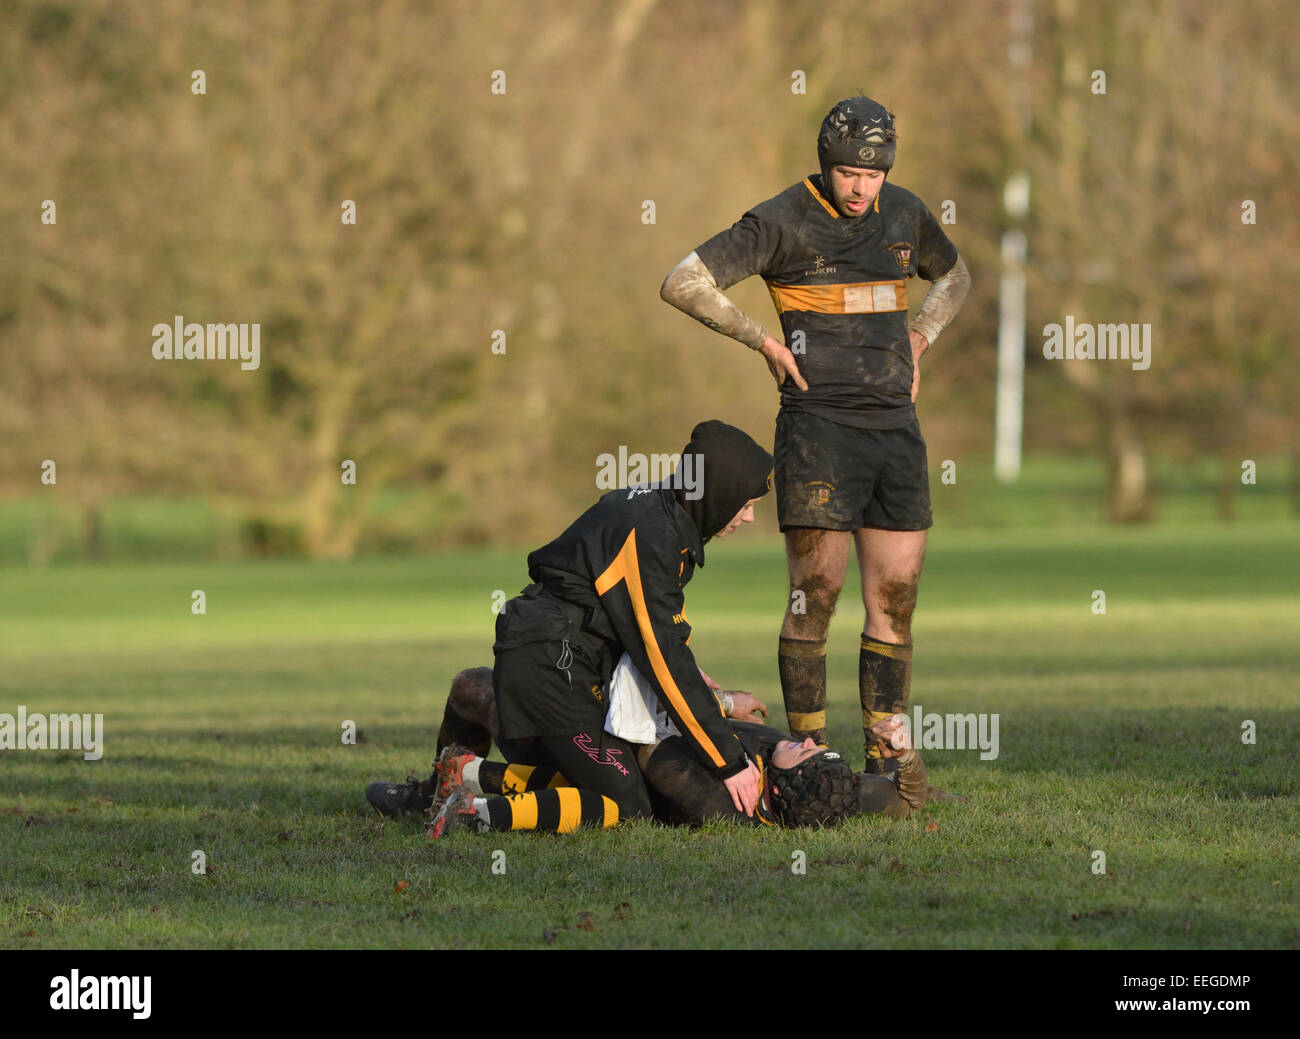 an injured rugby player is attended to by the physiotherapist, while a team member looks on concerned. - Stock Image